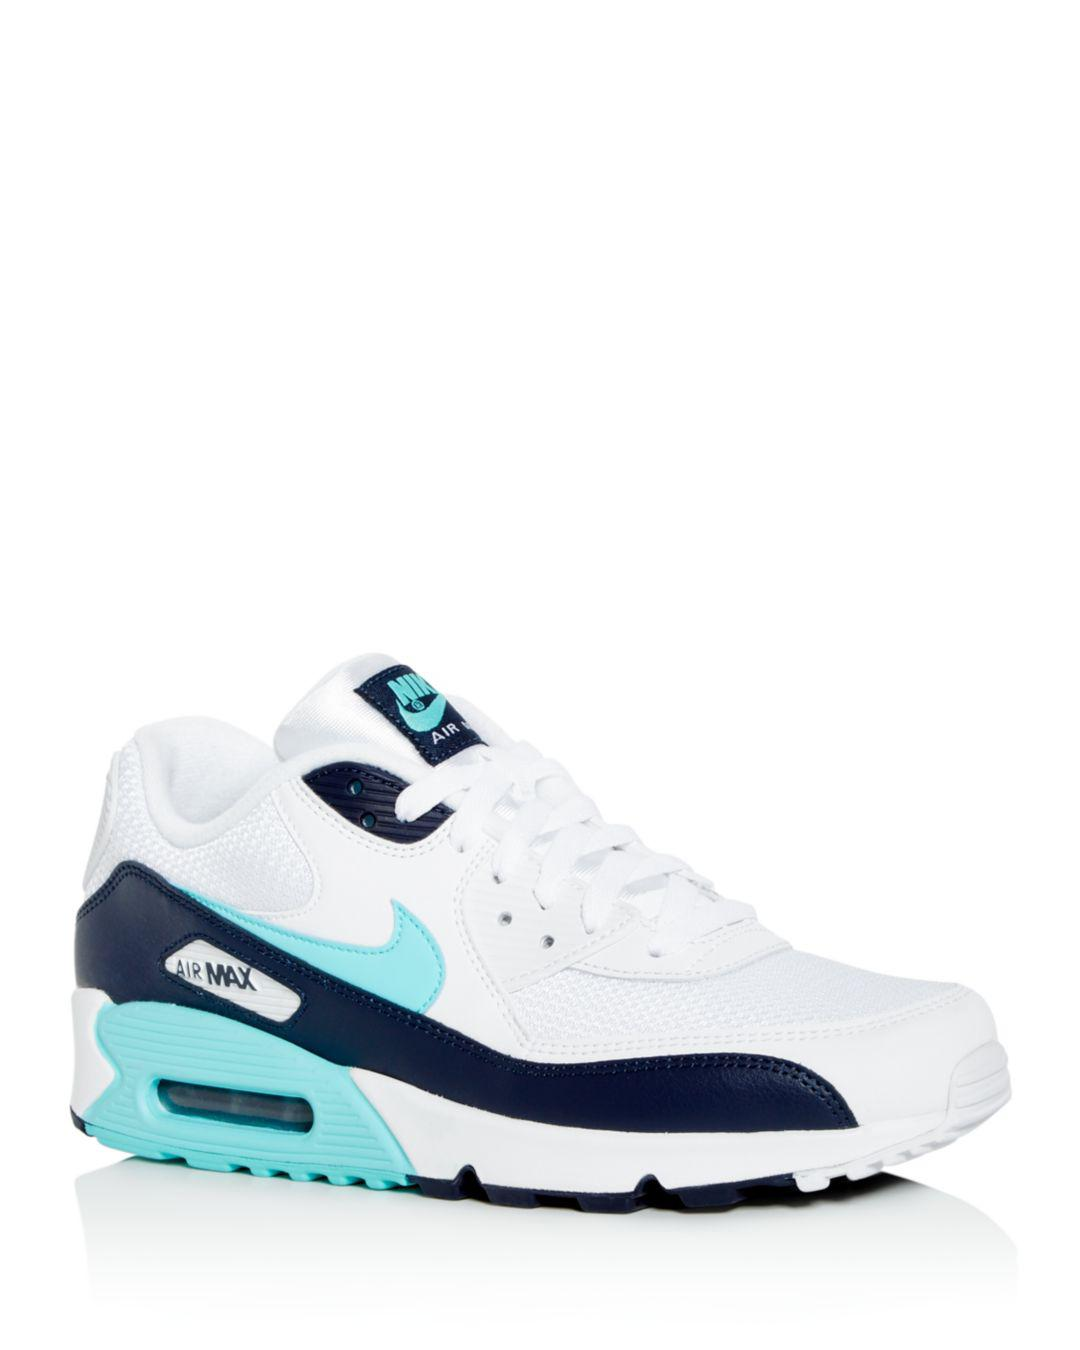 new product 4b43b fecd9 Nike. White Men s Air Max 90 Essential Low-top Sneakers